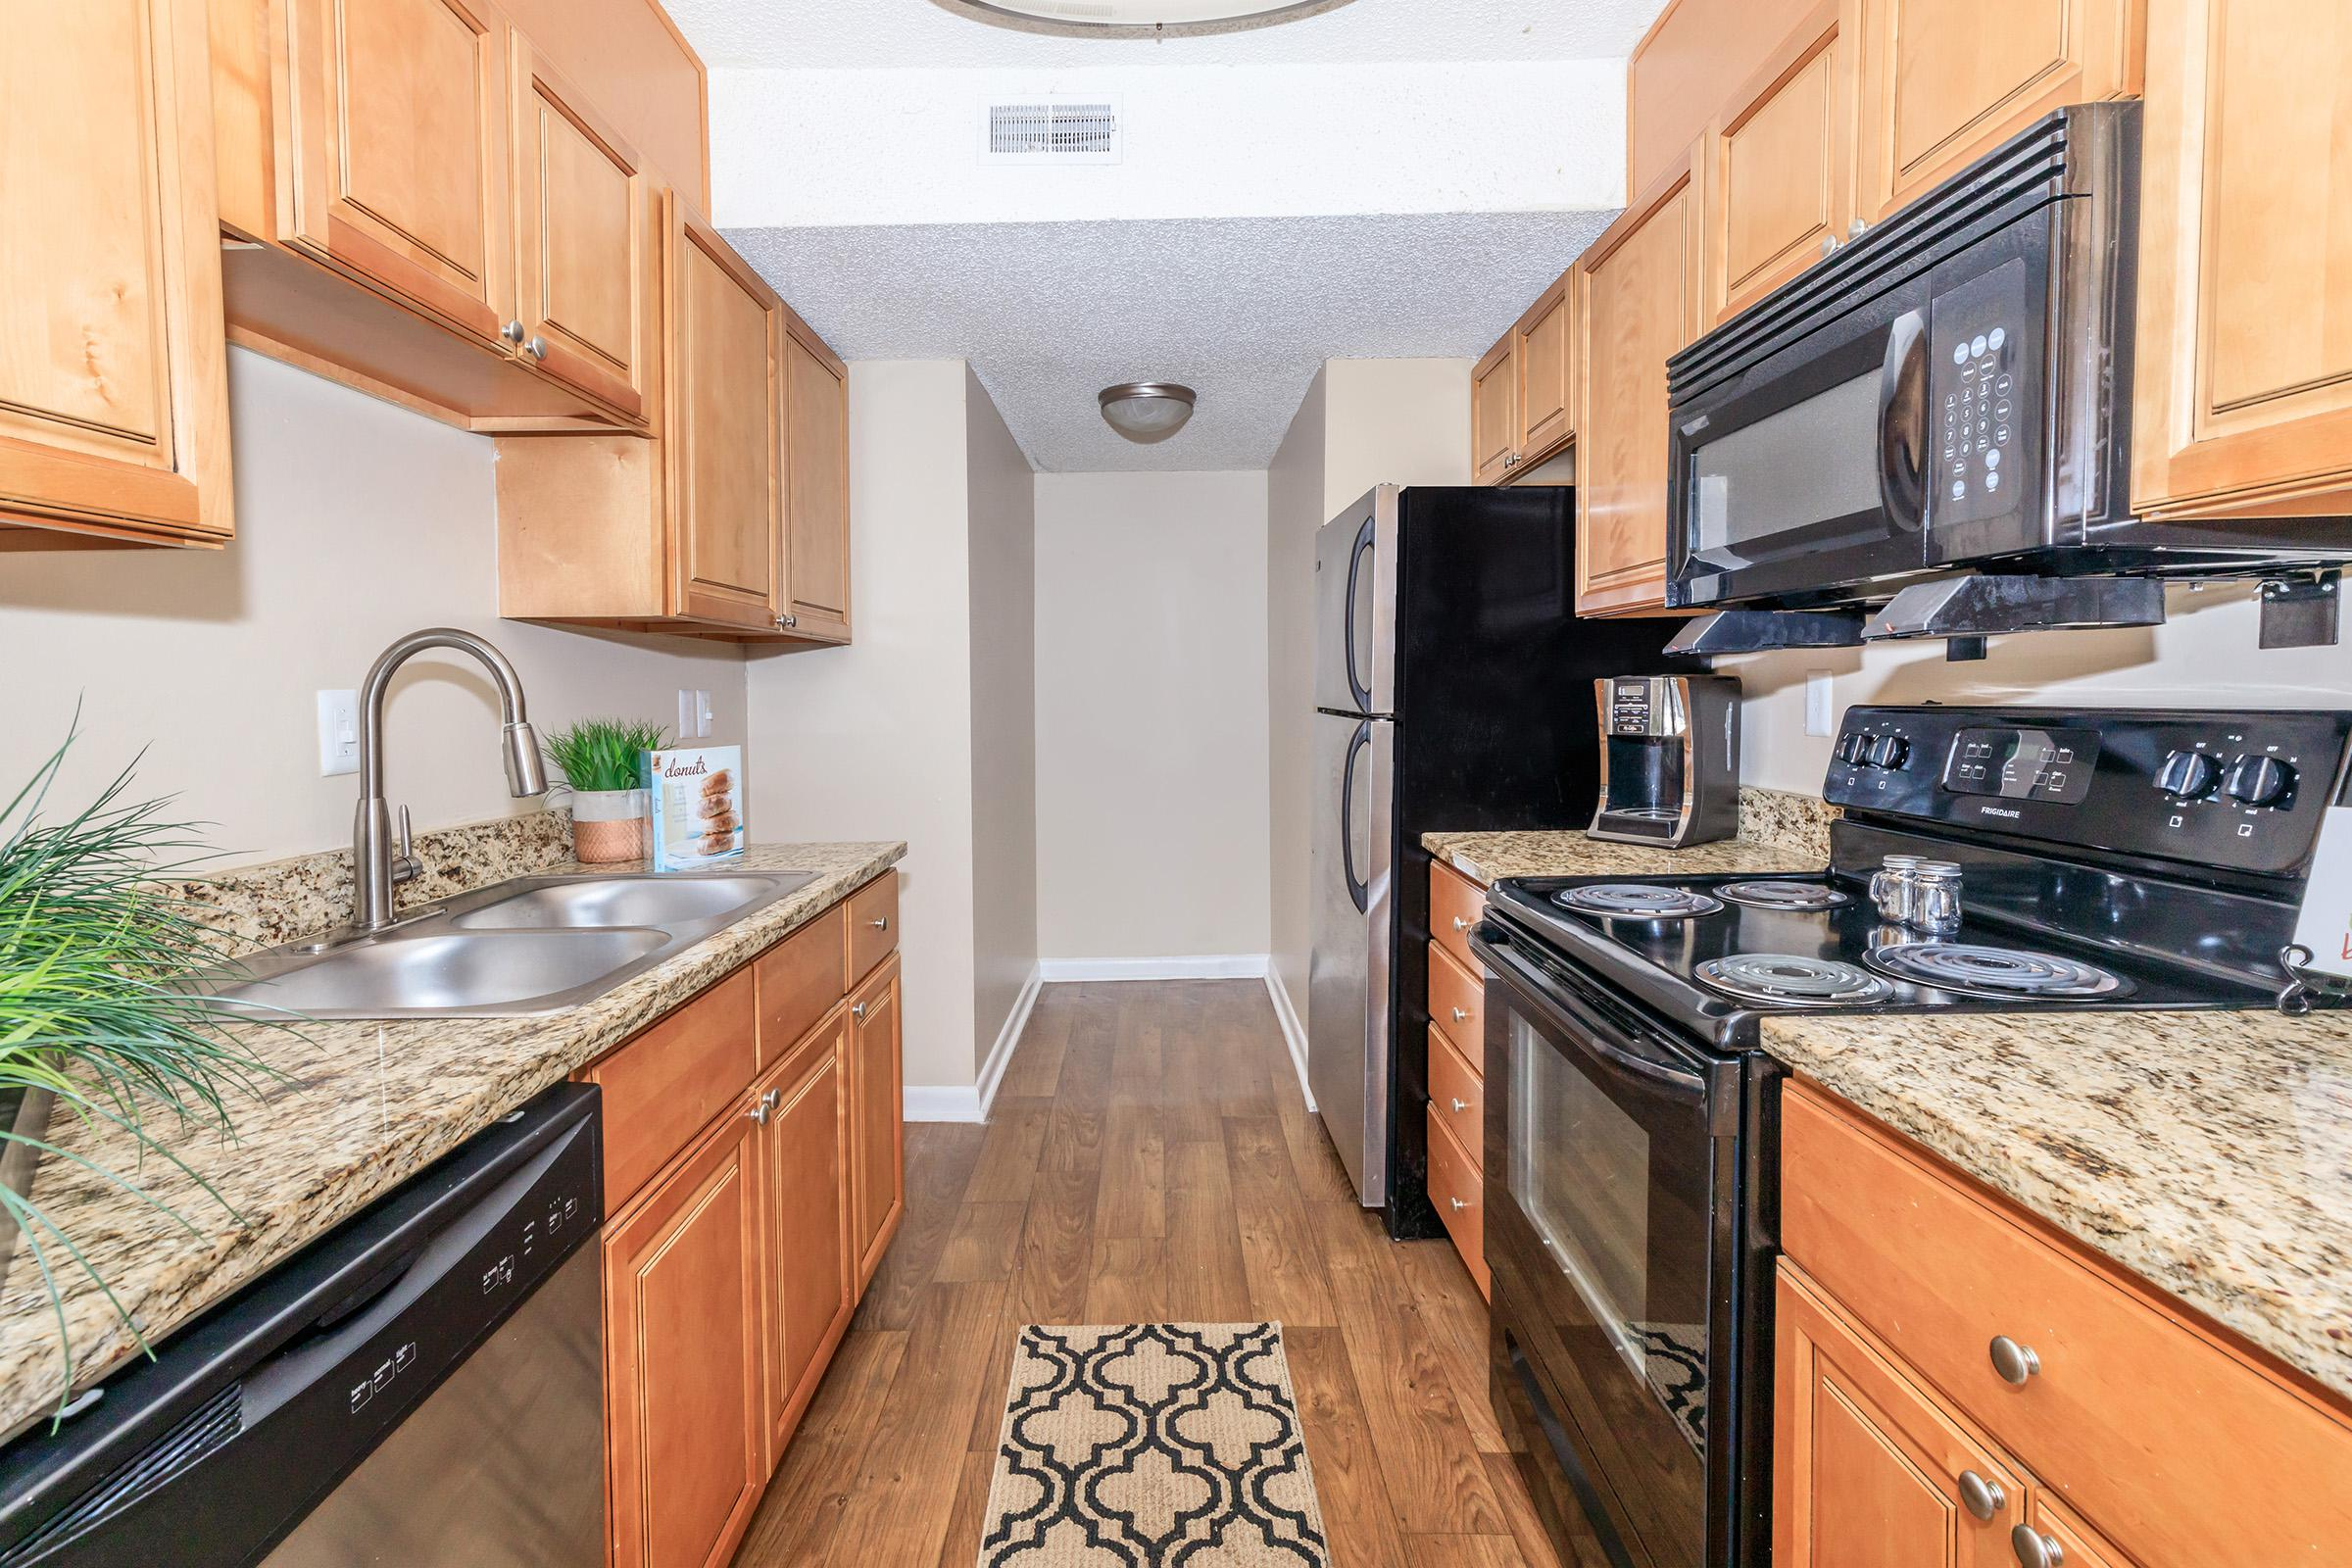 All electric kitchen